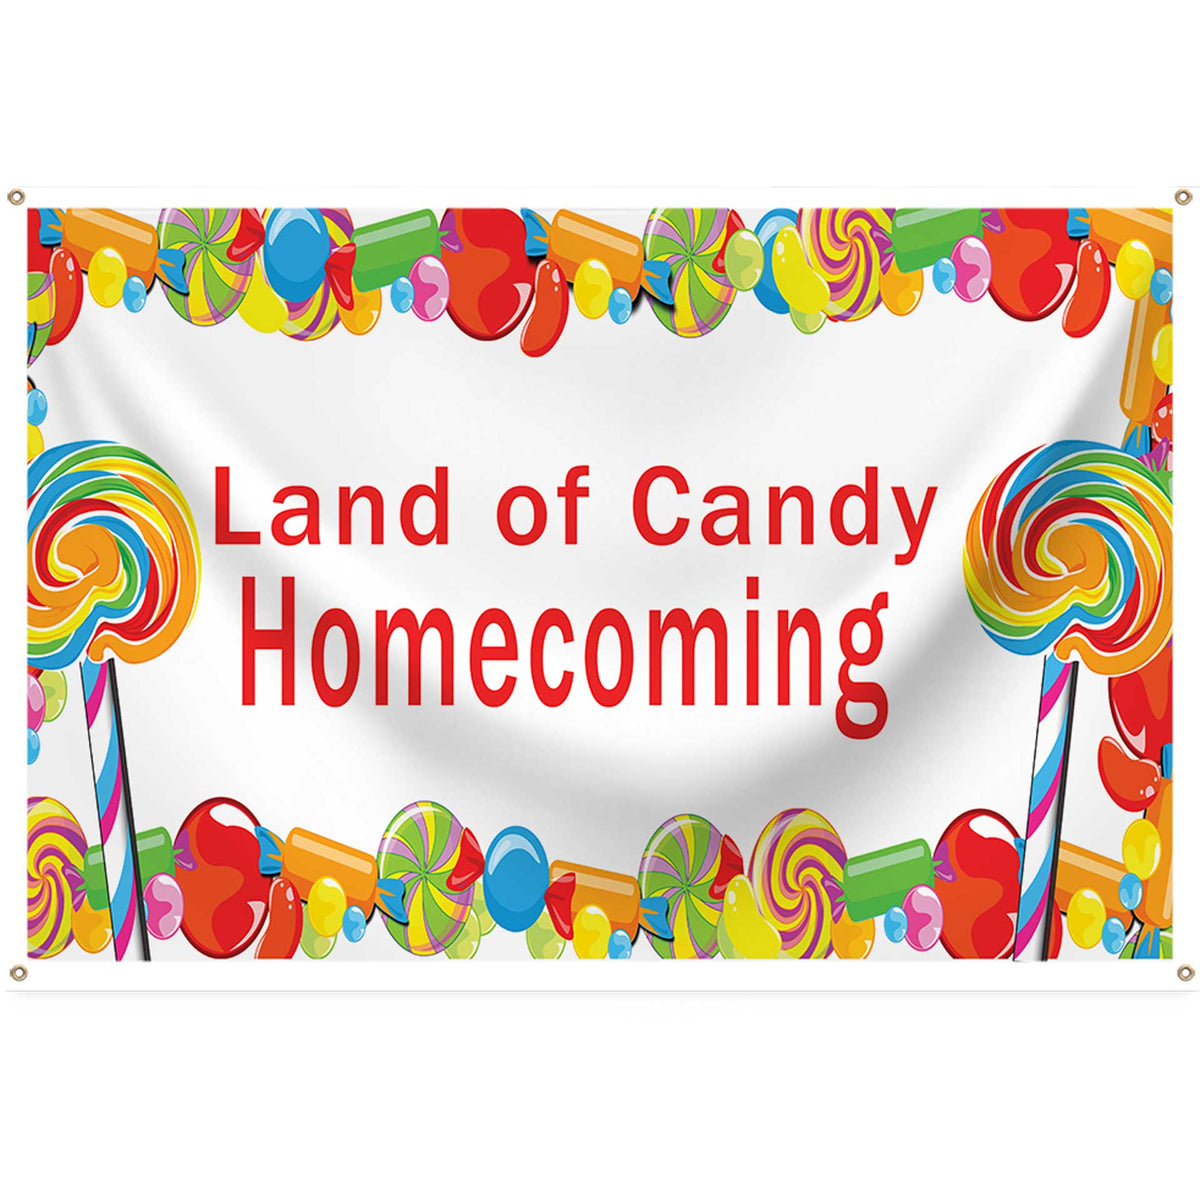 Lollipop & Candy Dreams Square Banner